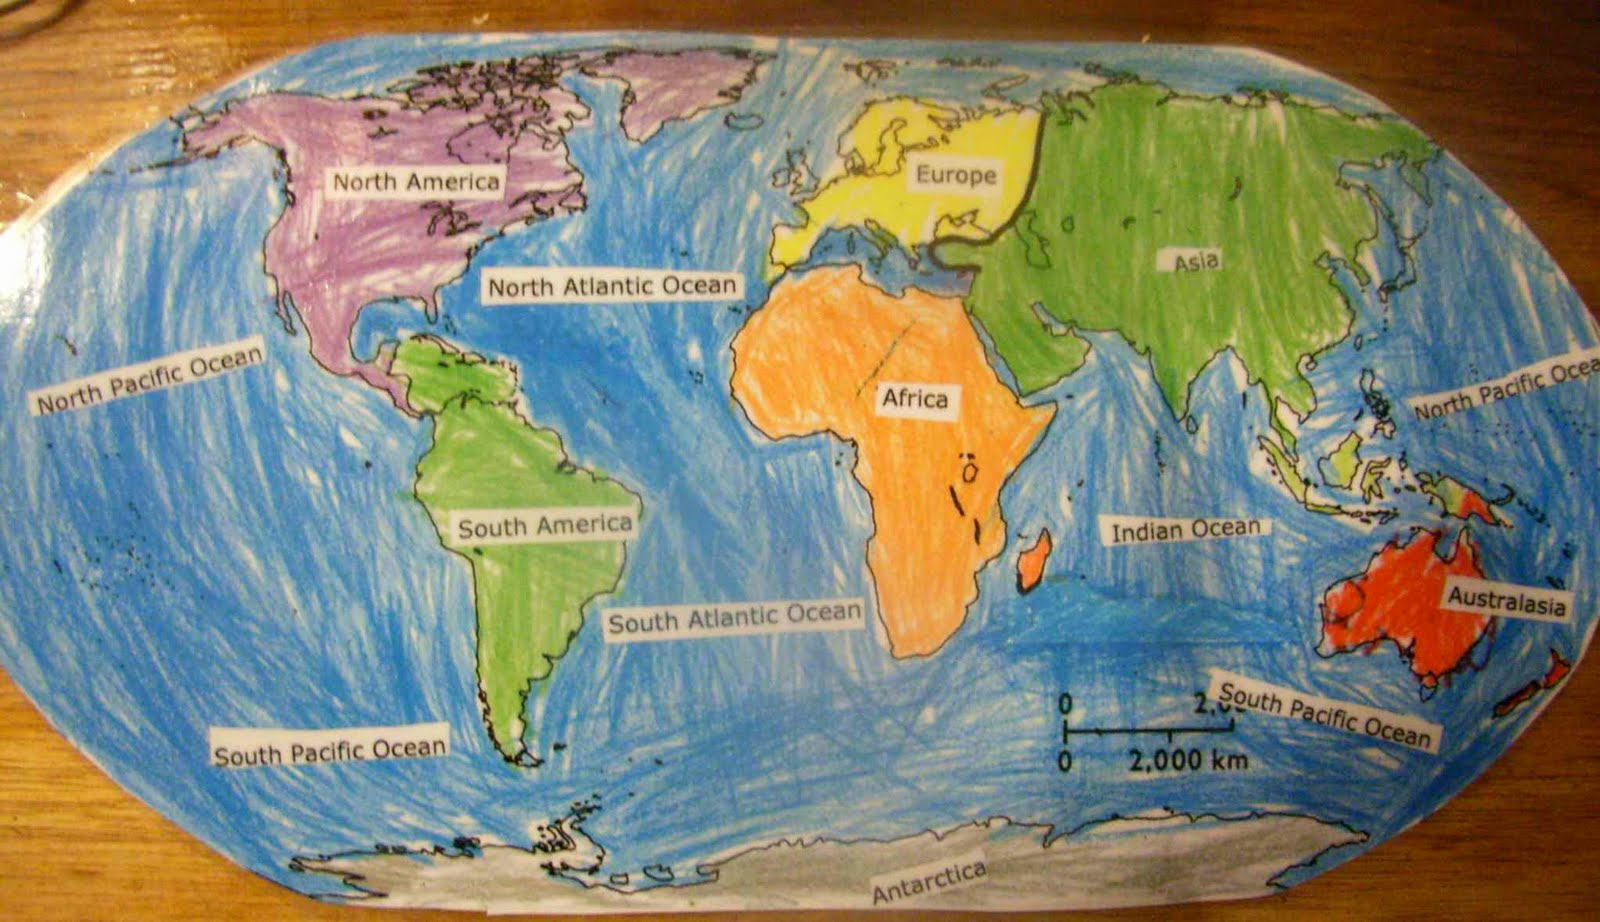 World Map Continents And Oceans - Map showing continents and oceans